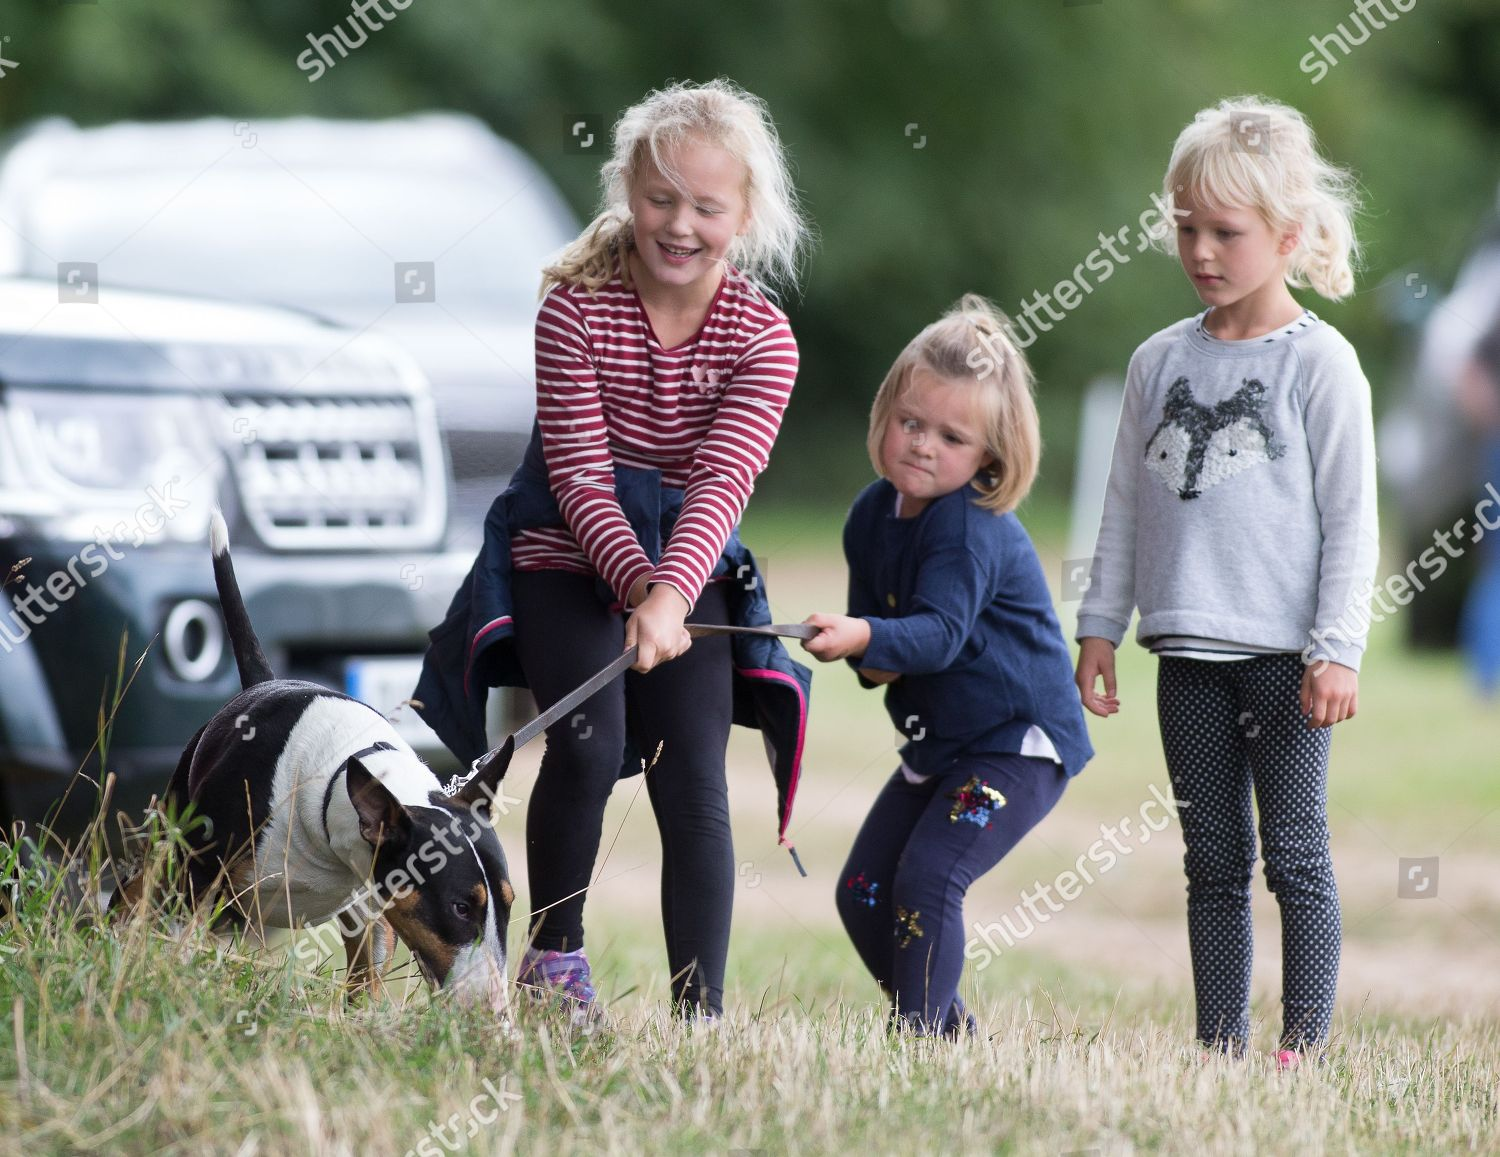 whately-manor-international-horse-trials-at-gatcombe-park-gloucestershire-uk-shutterstock-editorial-9876945p.jpg